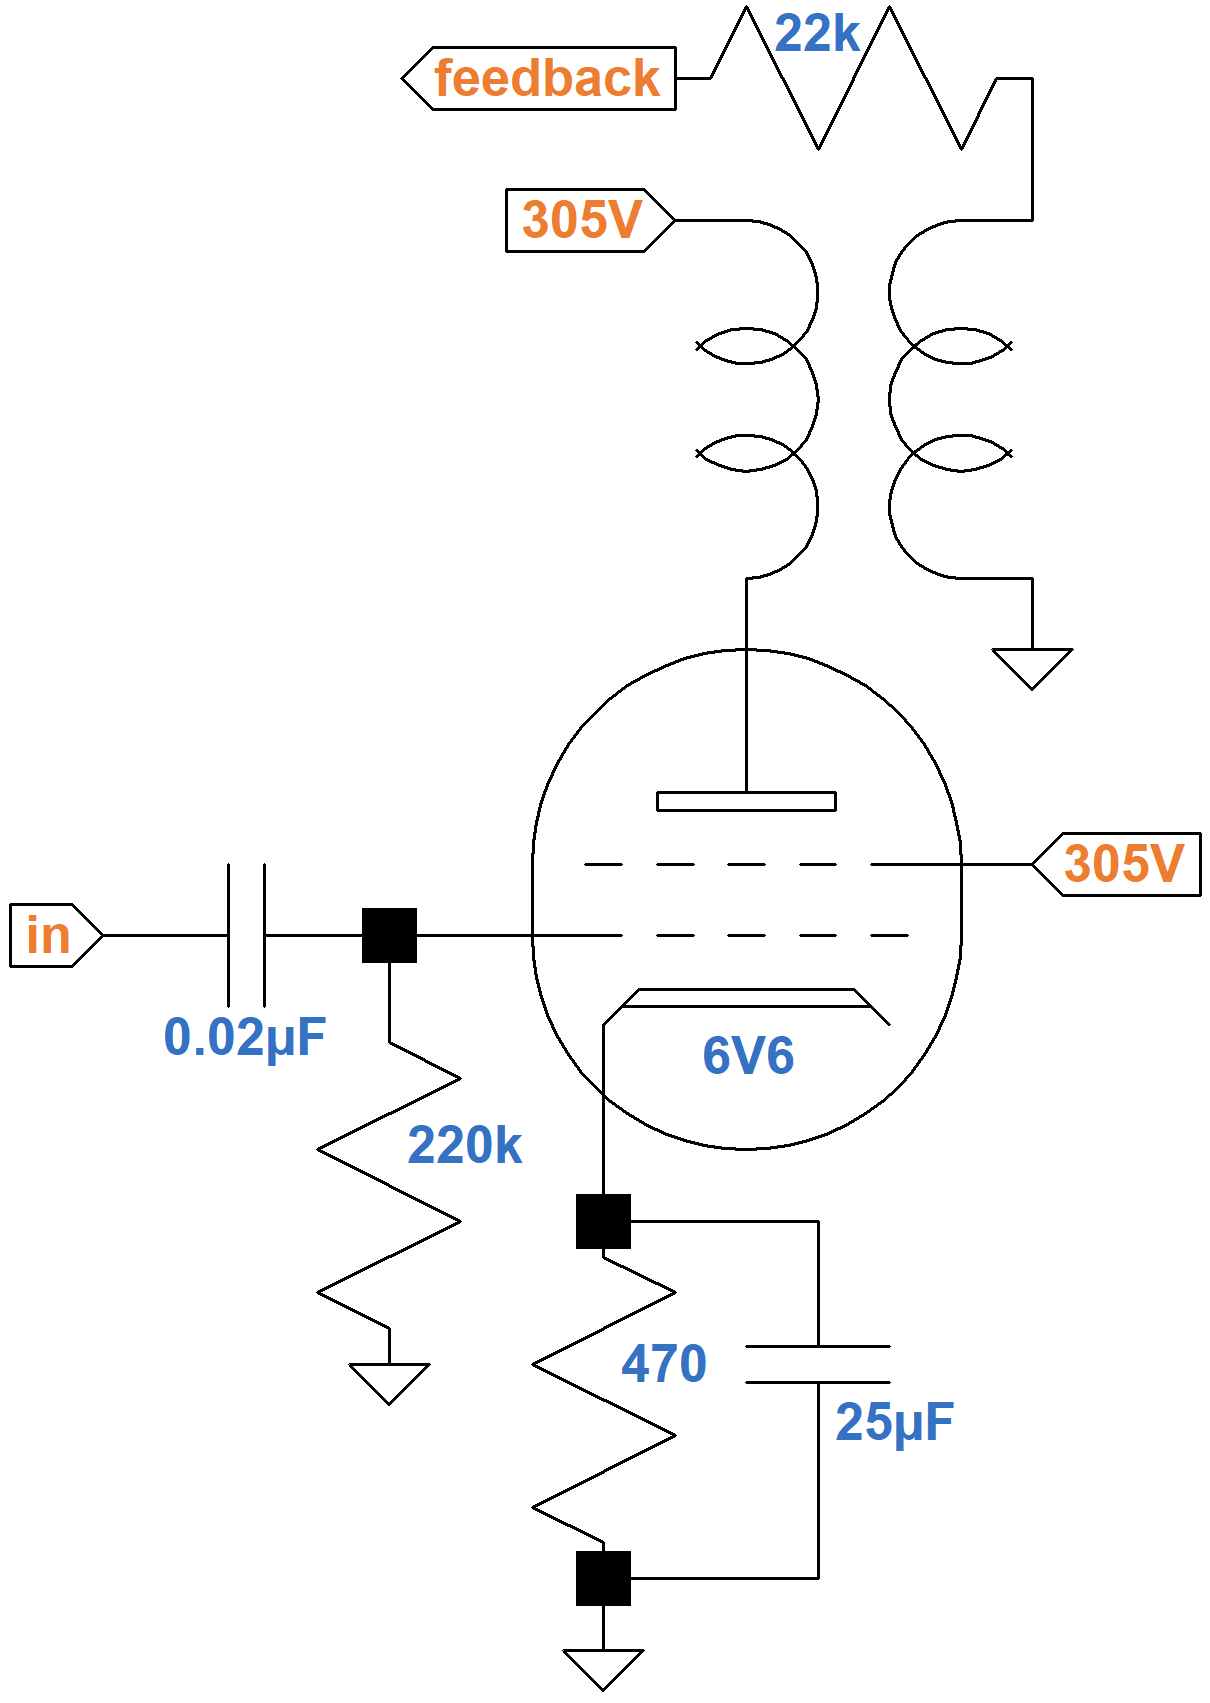 Fender Champ 5E1 Circuit Analysis